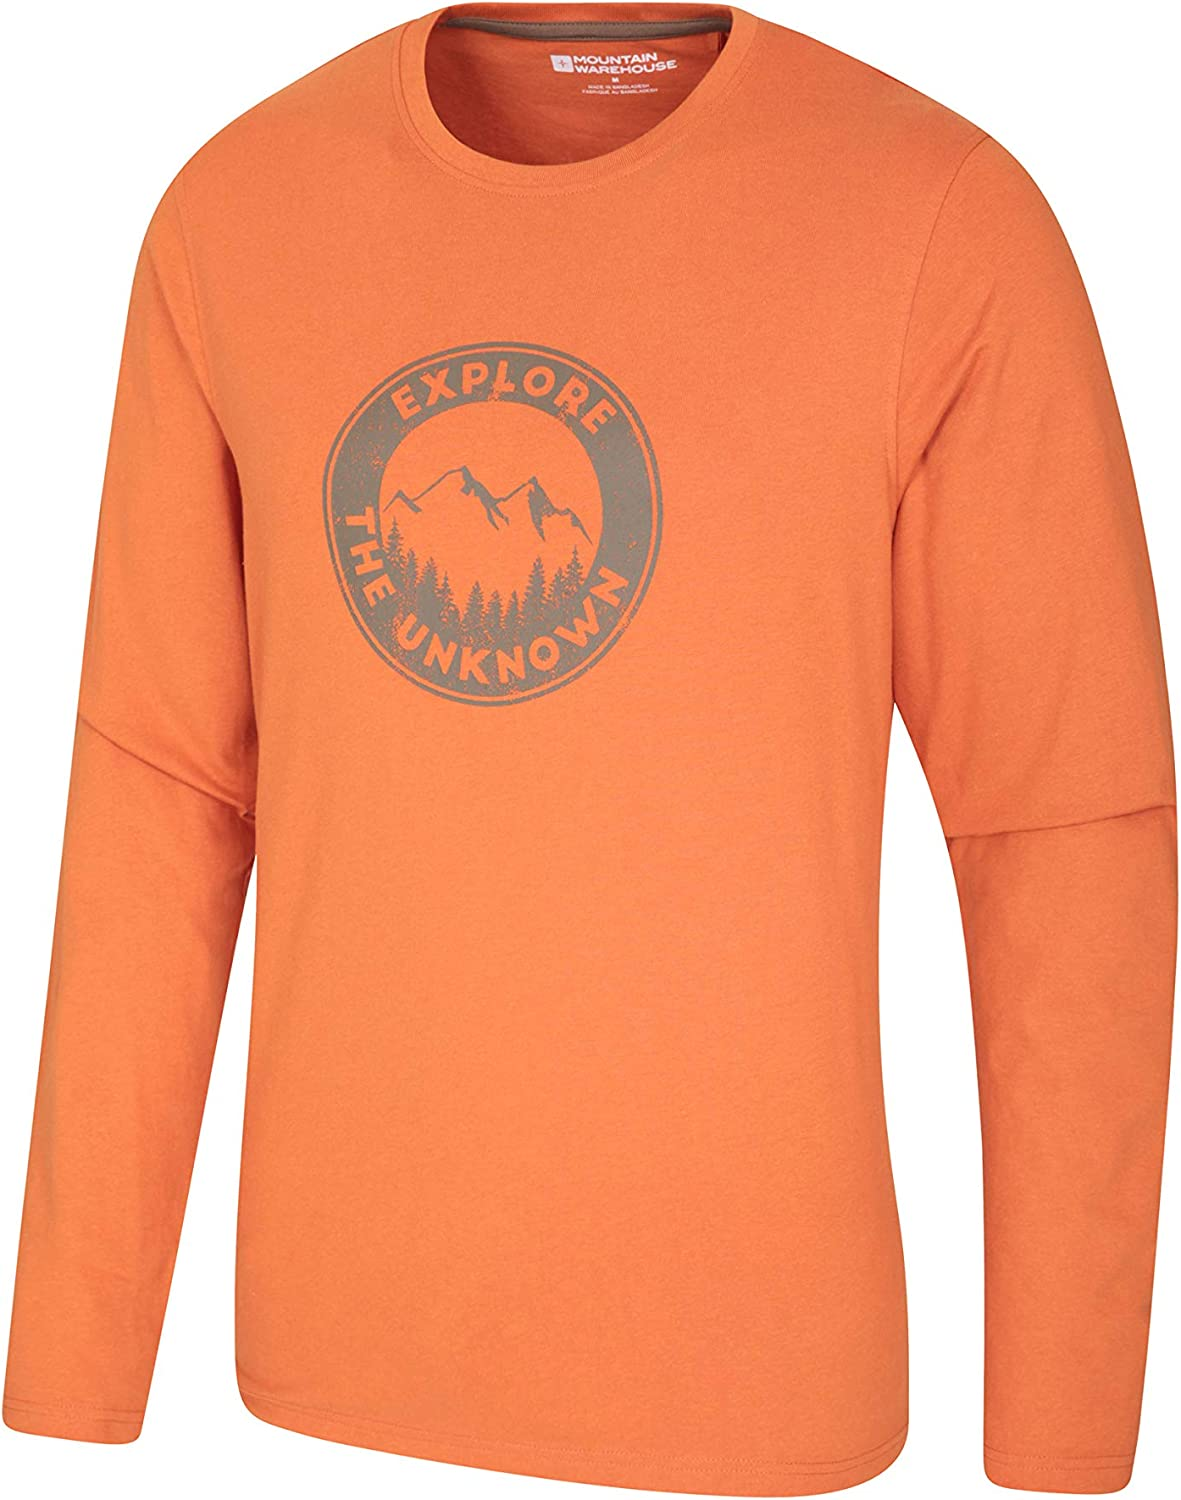 Mountain Warehouse Explore The Unknown Mens Long Sleeve Tee Breathable Top Sports Ideal for Gym Easy Care Running /& Cycling Lightweight T-Shirt